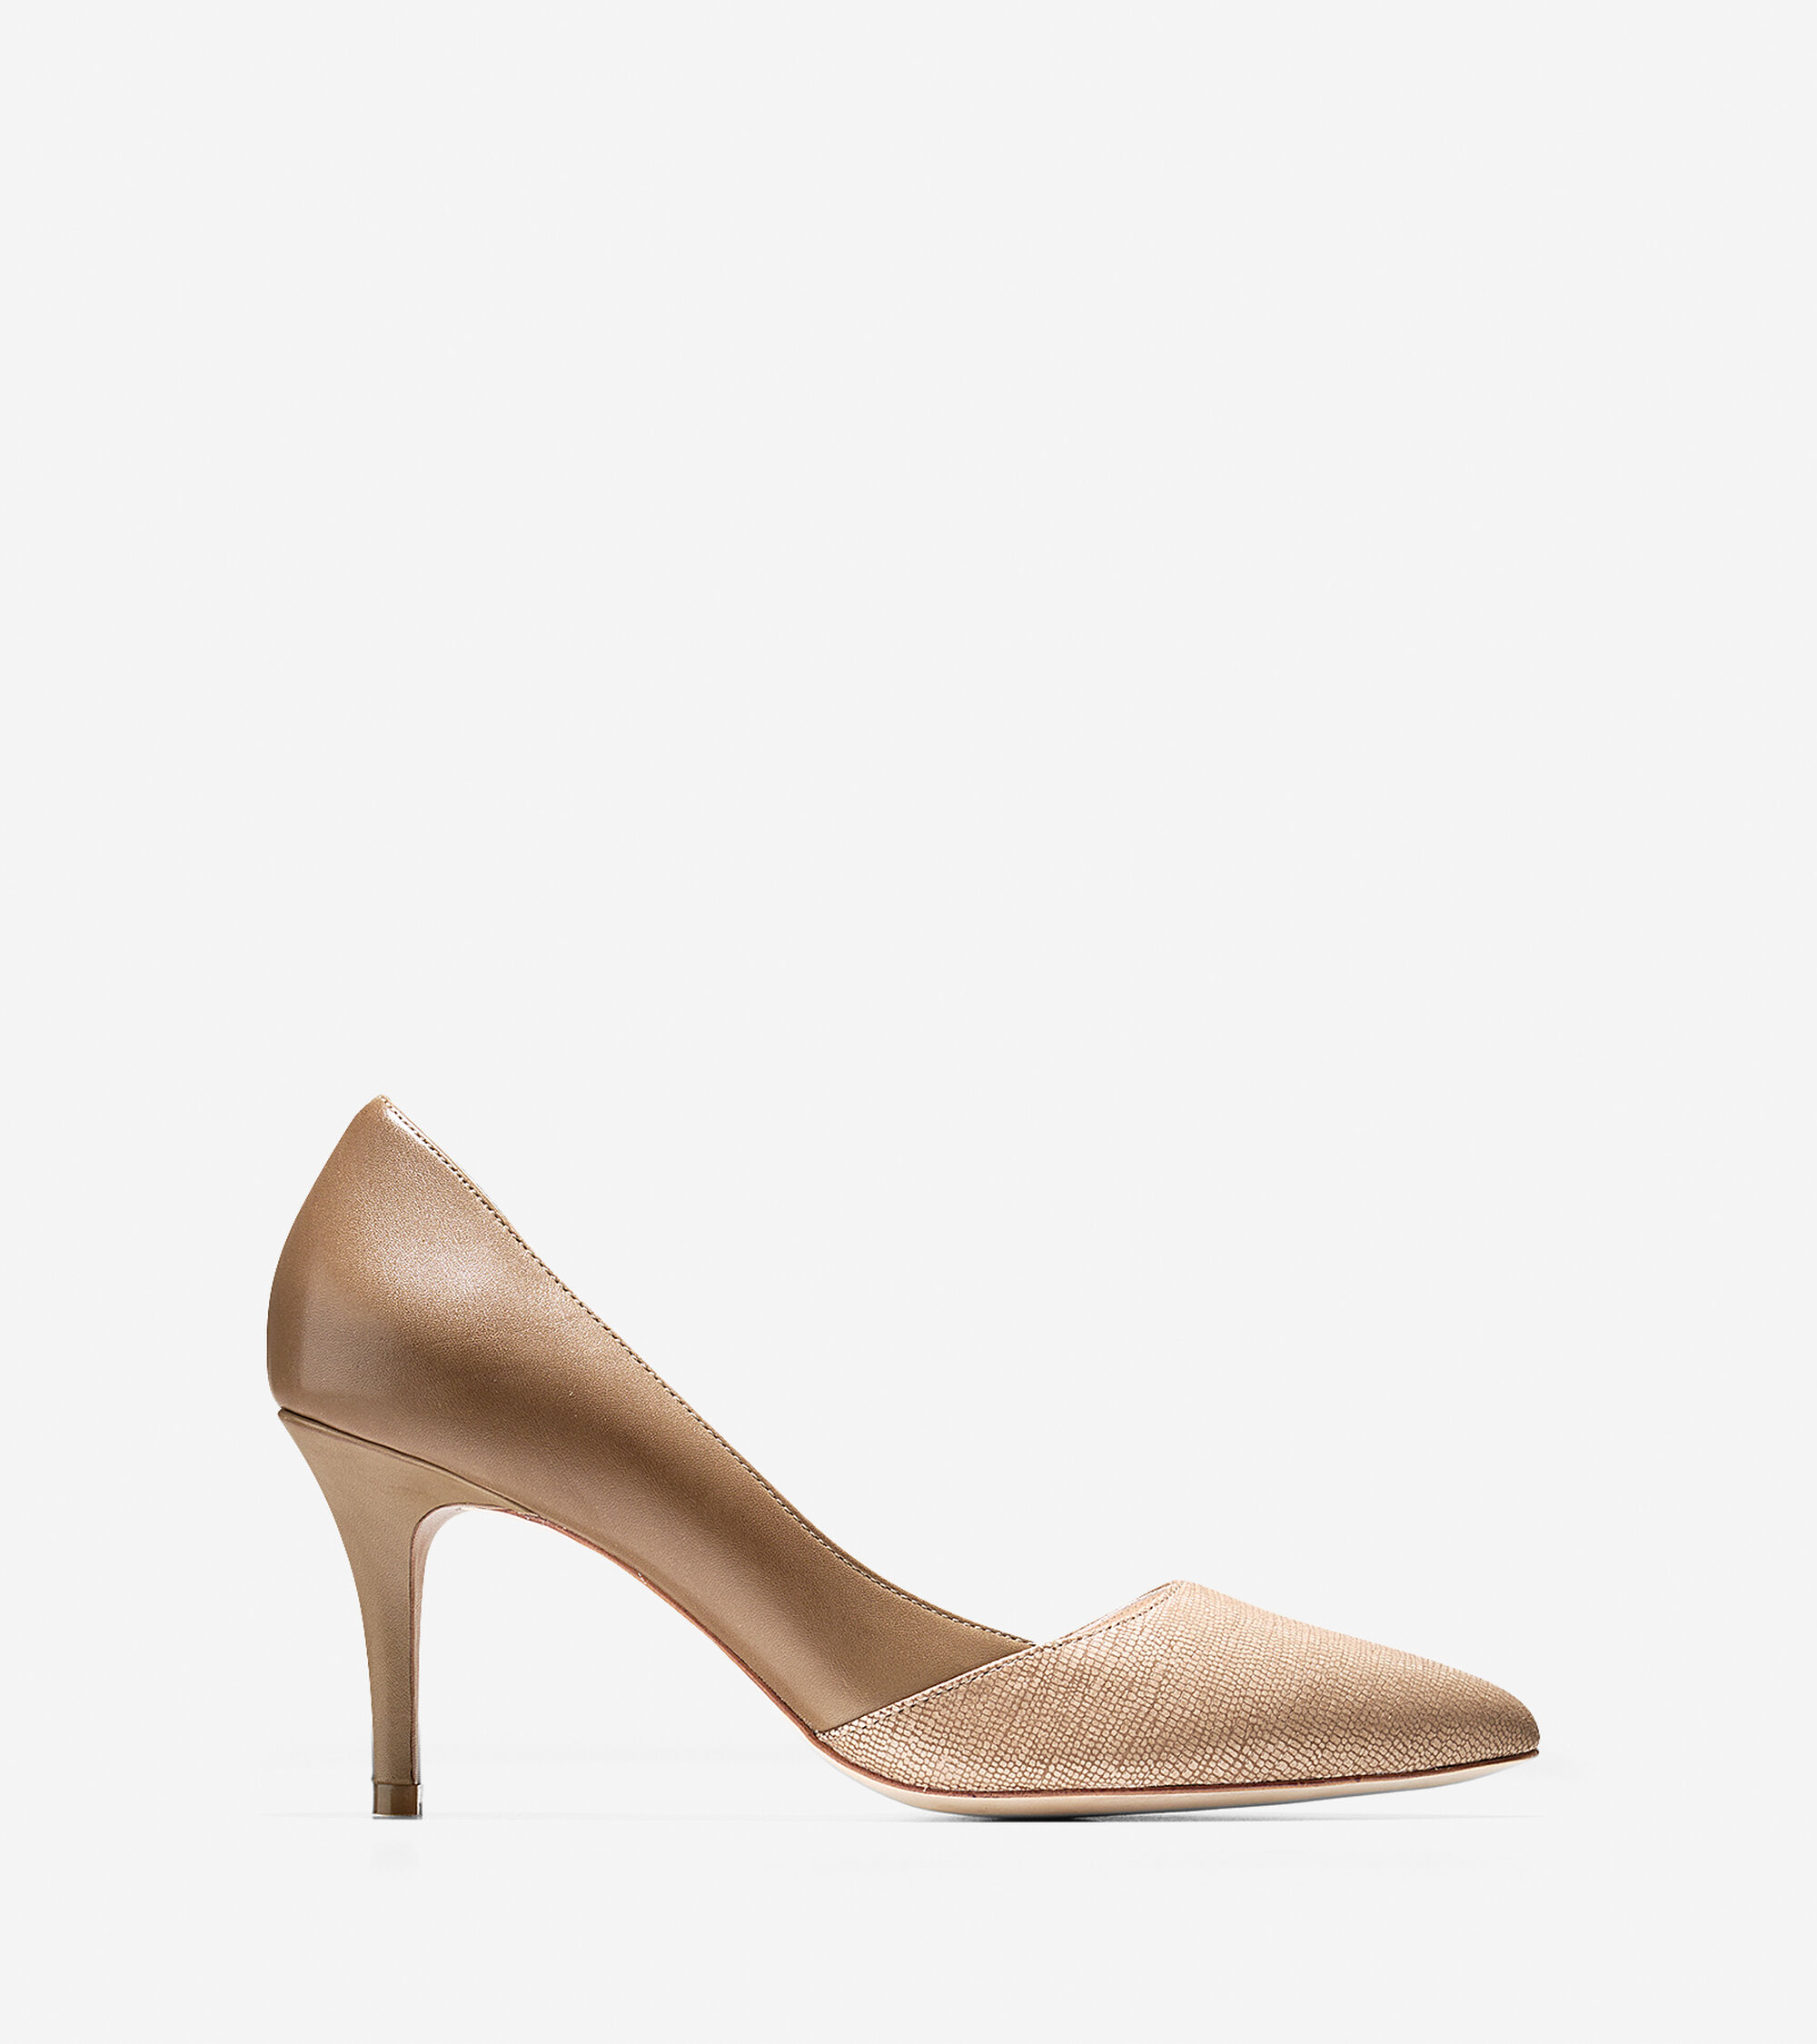 9d88770ccbe652 Women s Highline Pumps 75mm Pointy Toe in Cremini-Cashew